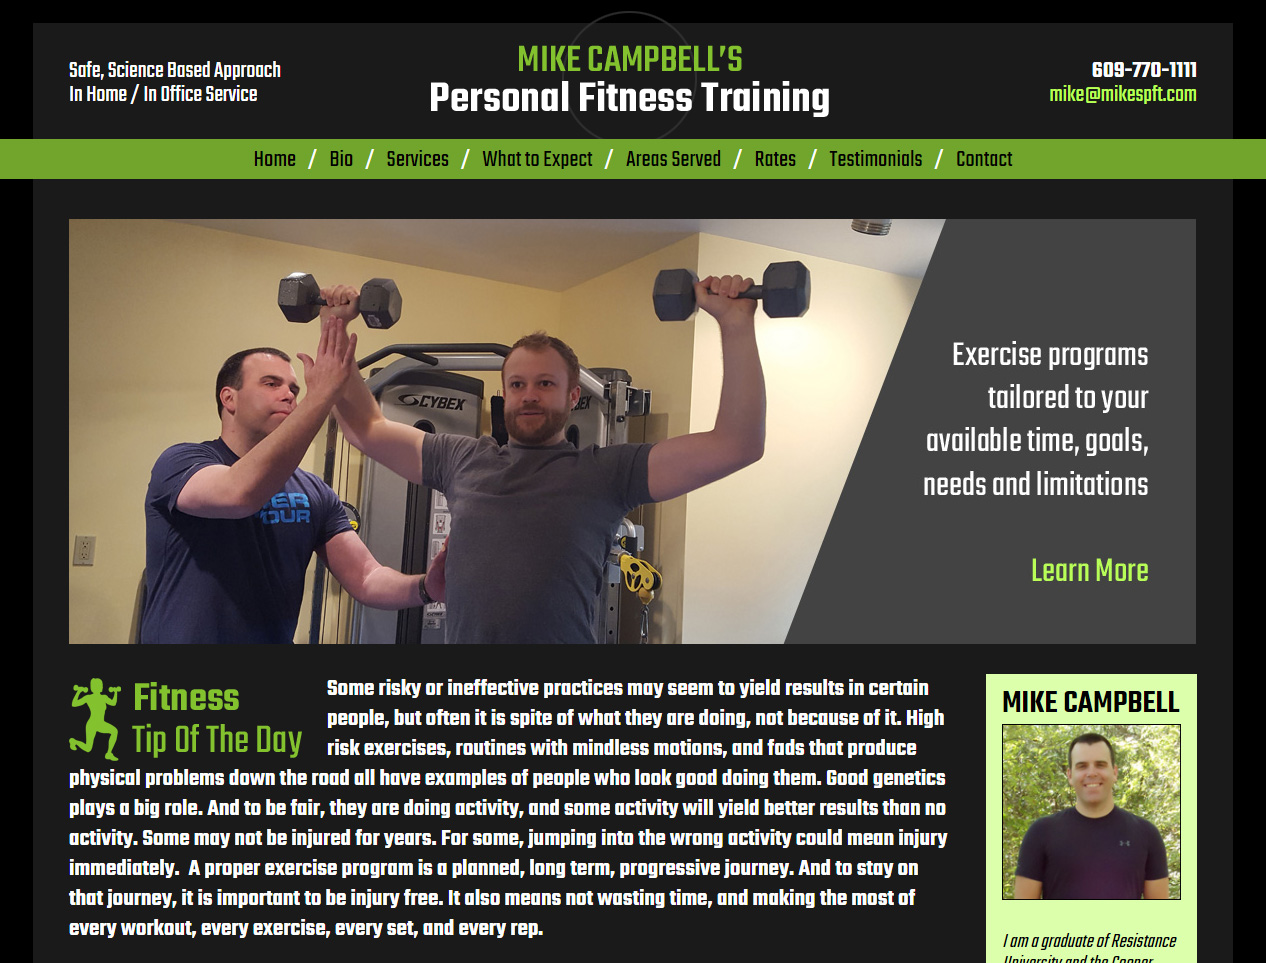 Mike Campbell's Personal Fitness Training